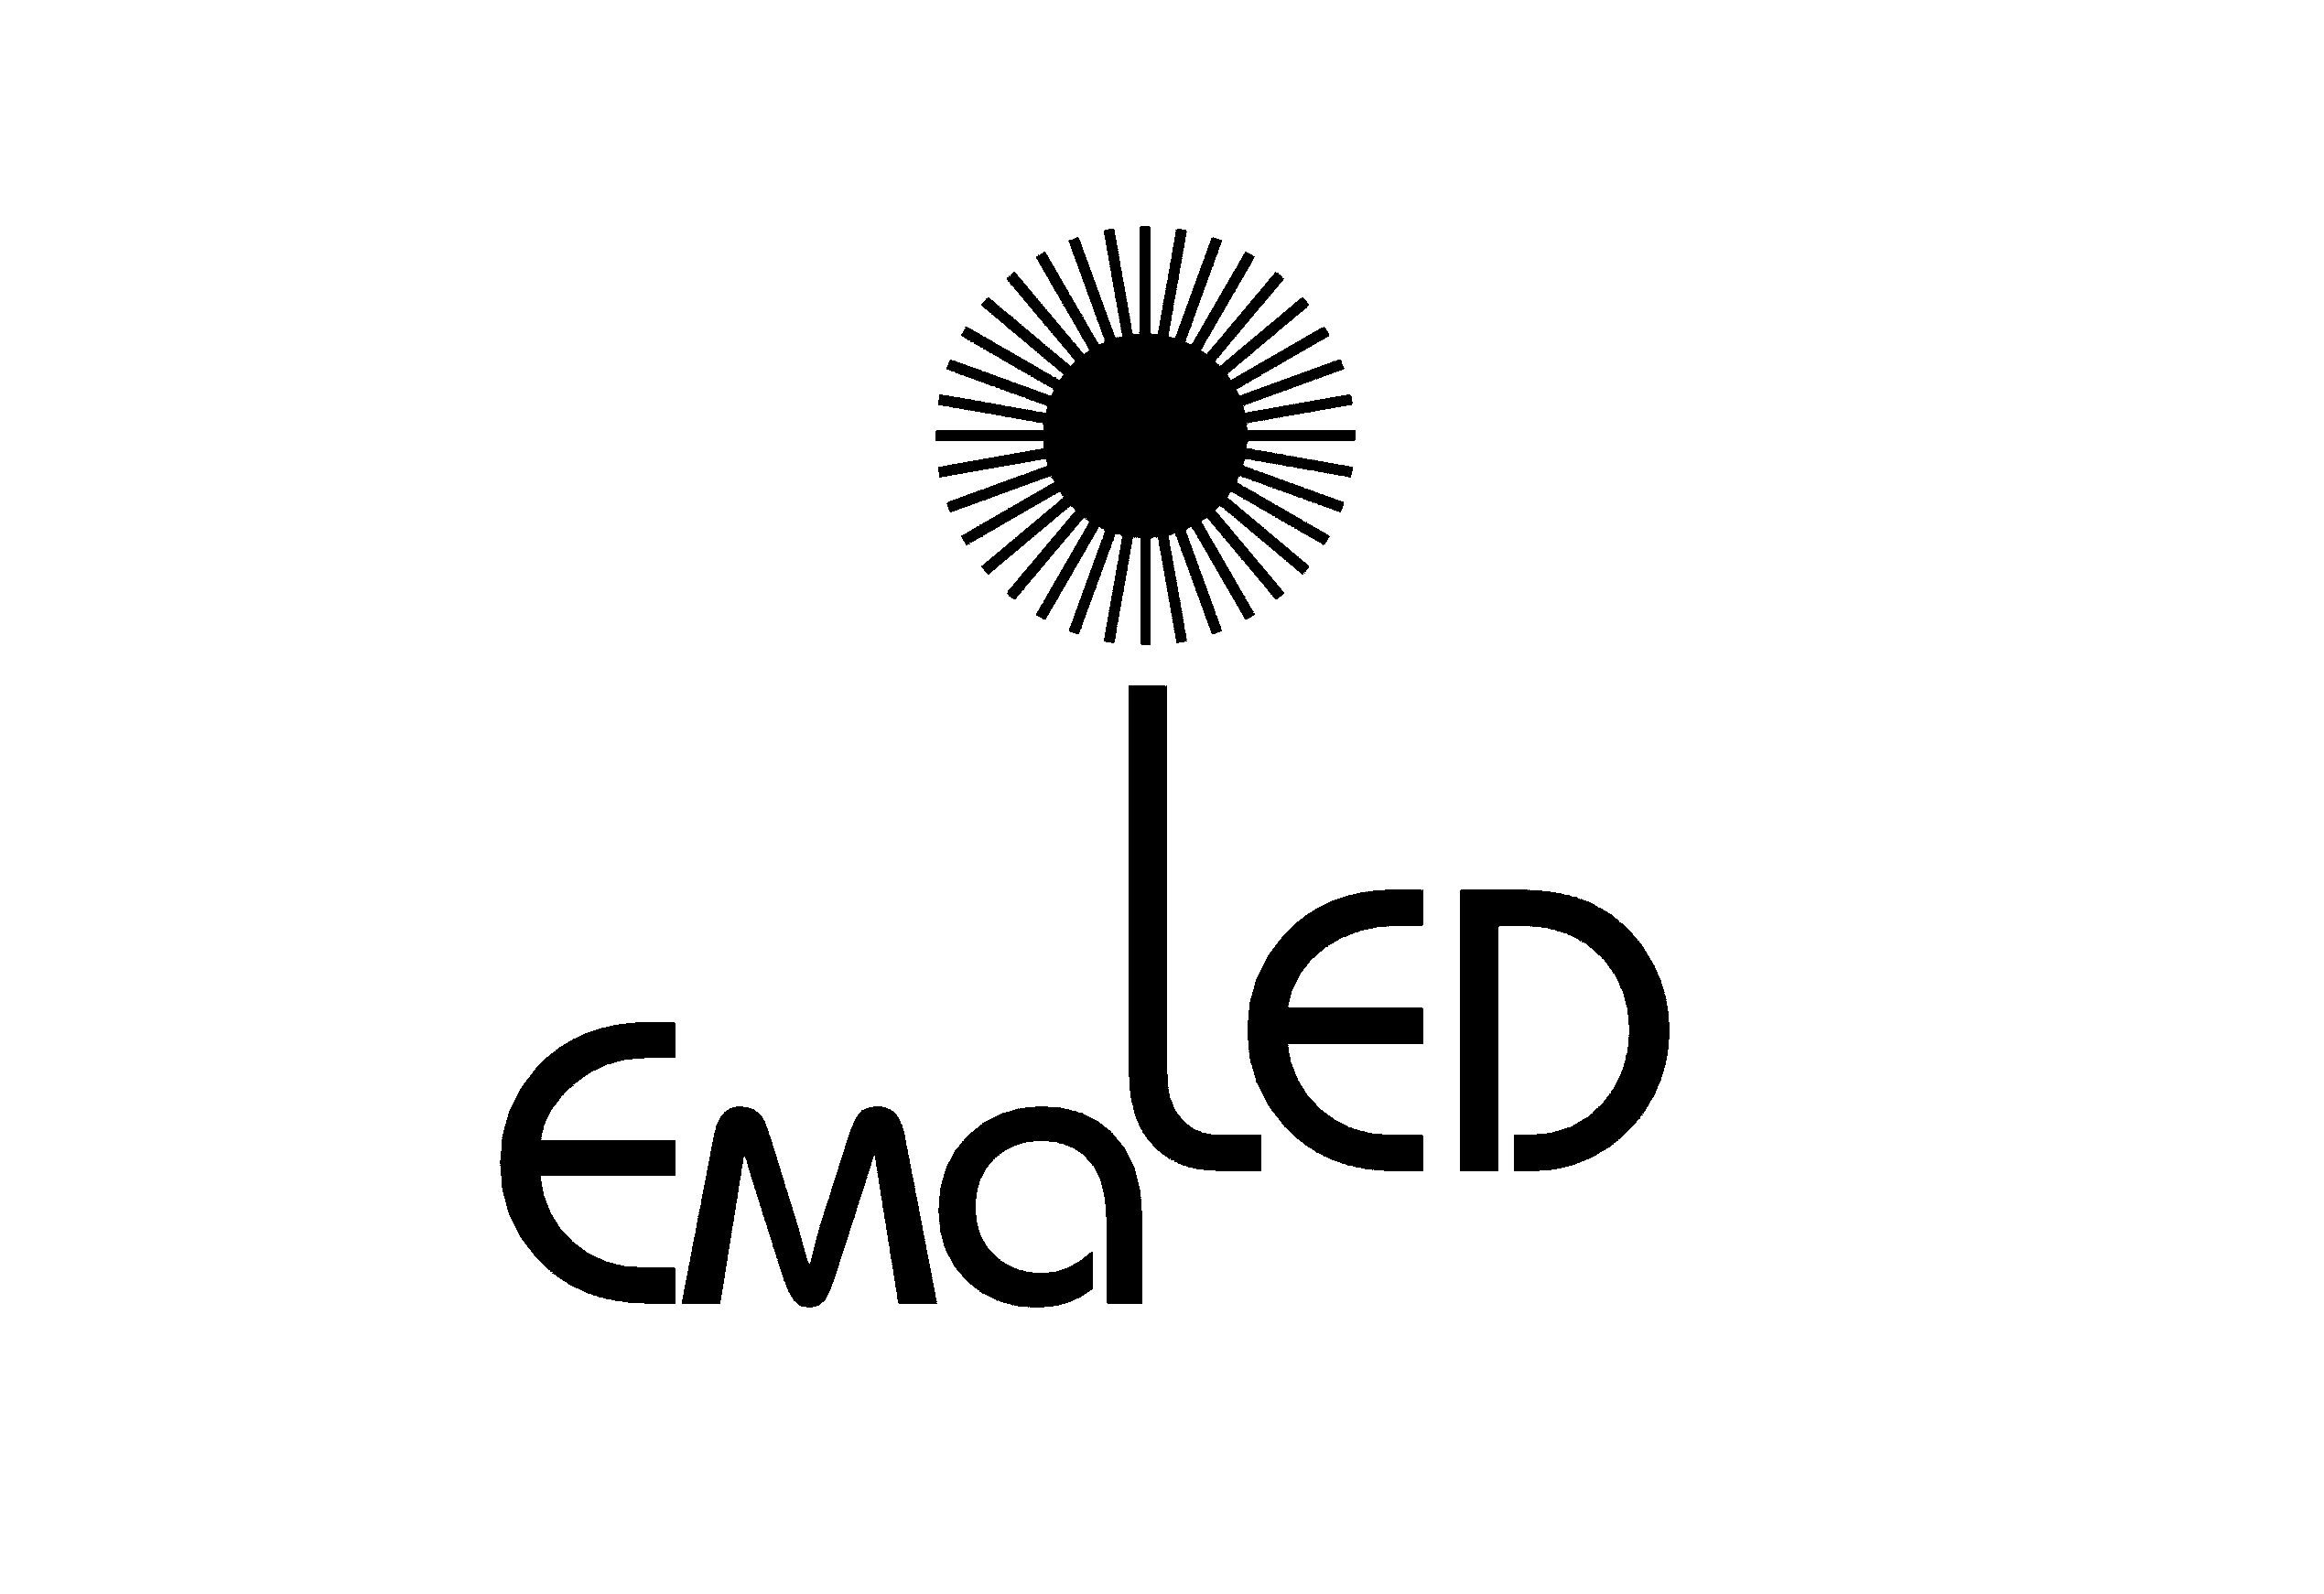 Emaled logo BlackWhite